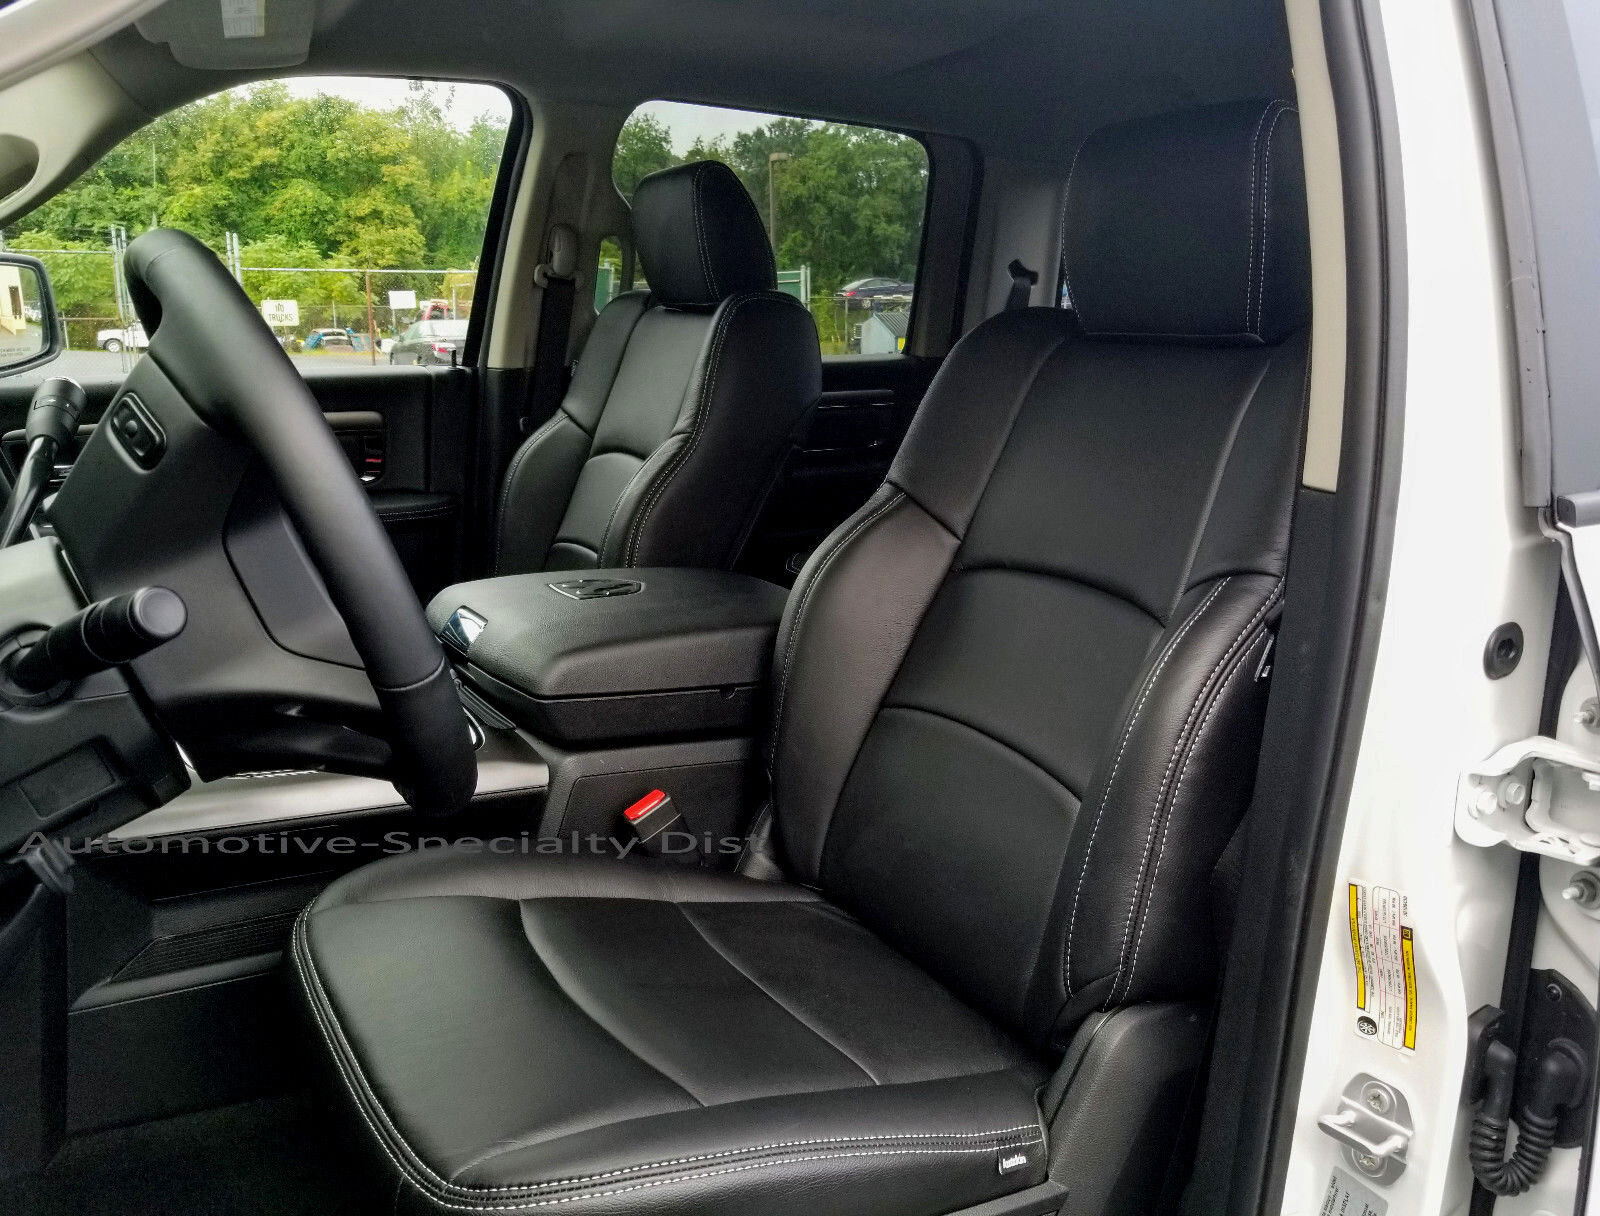 Pleasing Details About Katzkin Black Leather Int Seat Covers Fit 2012 2017 Dodge Ram Crew Cab 1500 2500 Andrewgaddart Wooden Chair Designs For Living Room Andrewgaddartcom